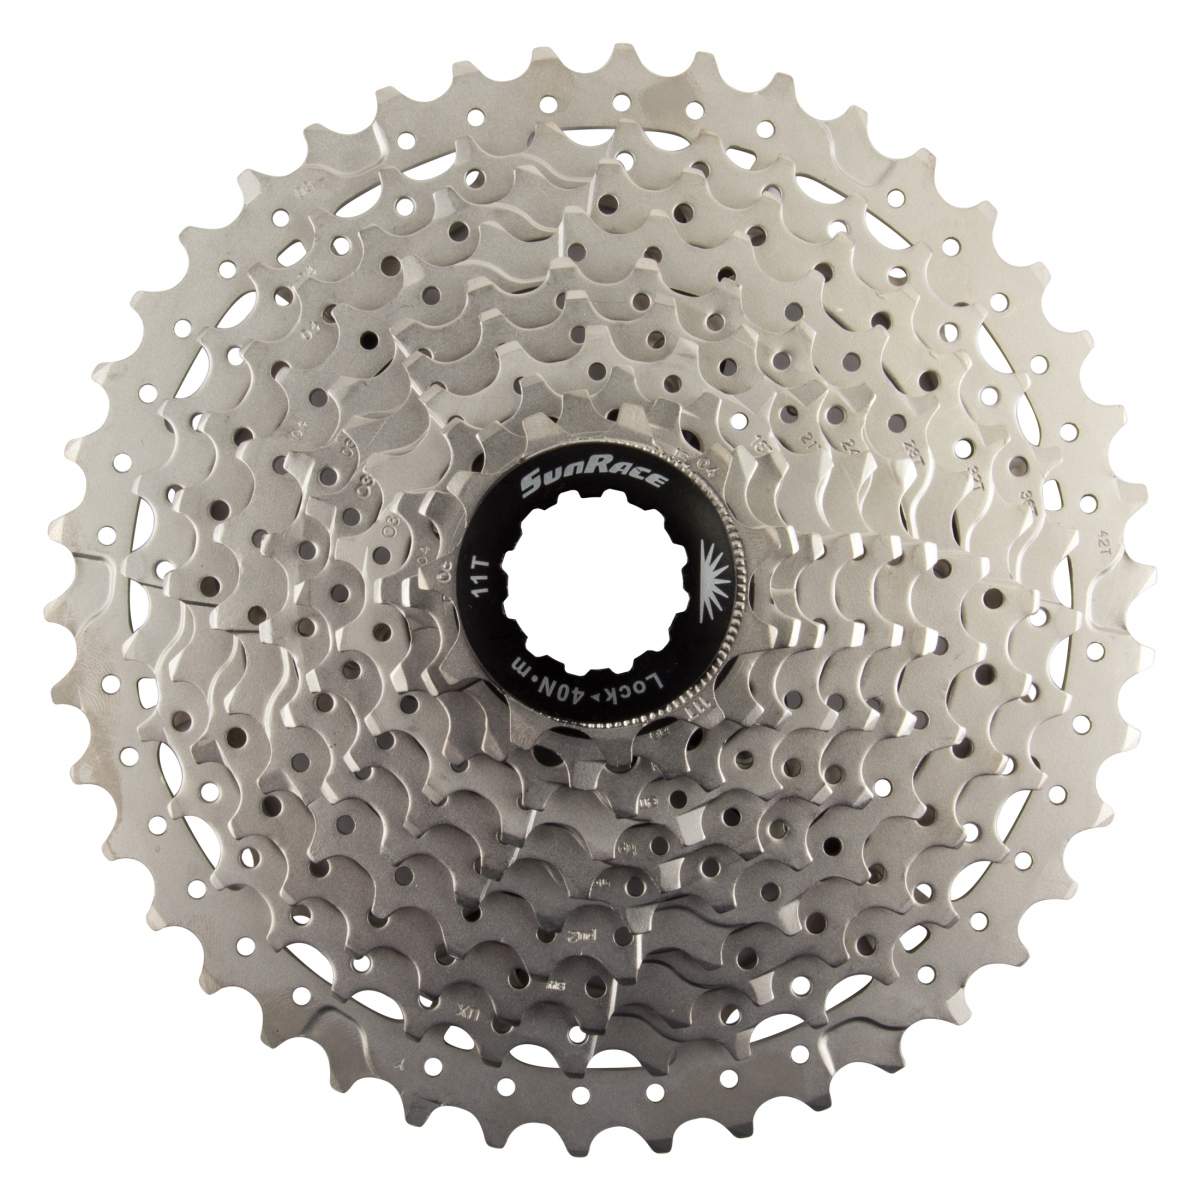 Search Results Sproket 8 Speed Shimano Hg 31 11 34t Cs Ms 10s Cassette